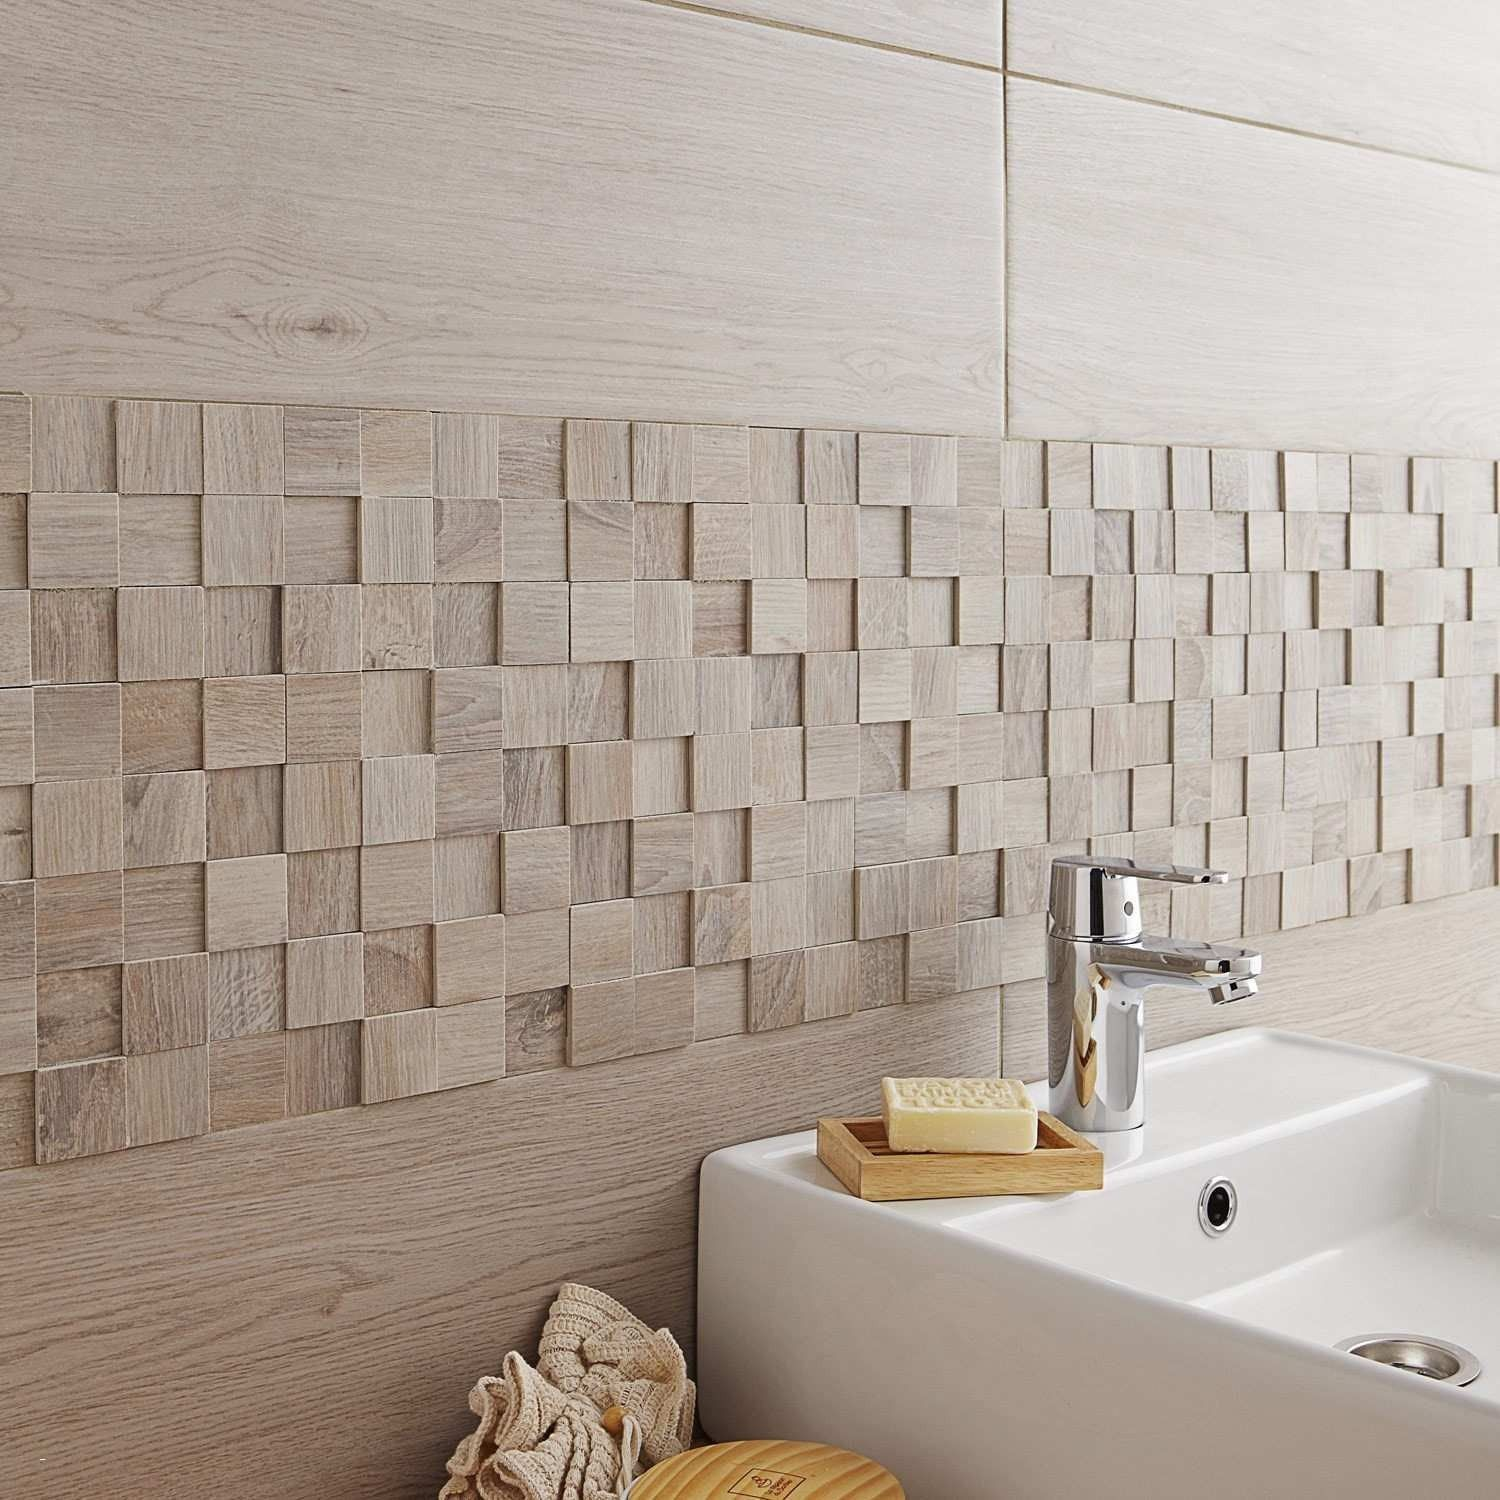 Luxury Lambris Imitation Carrelage Bathroom Wall Tile Tile Bathroom Bathroom Inspiration